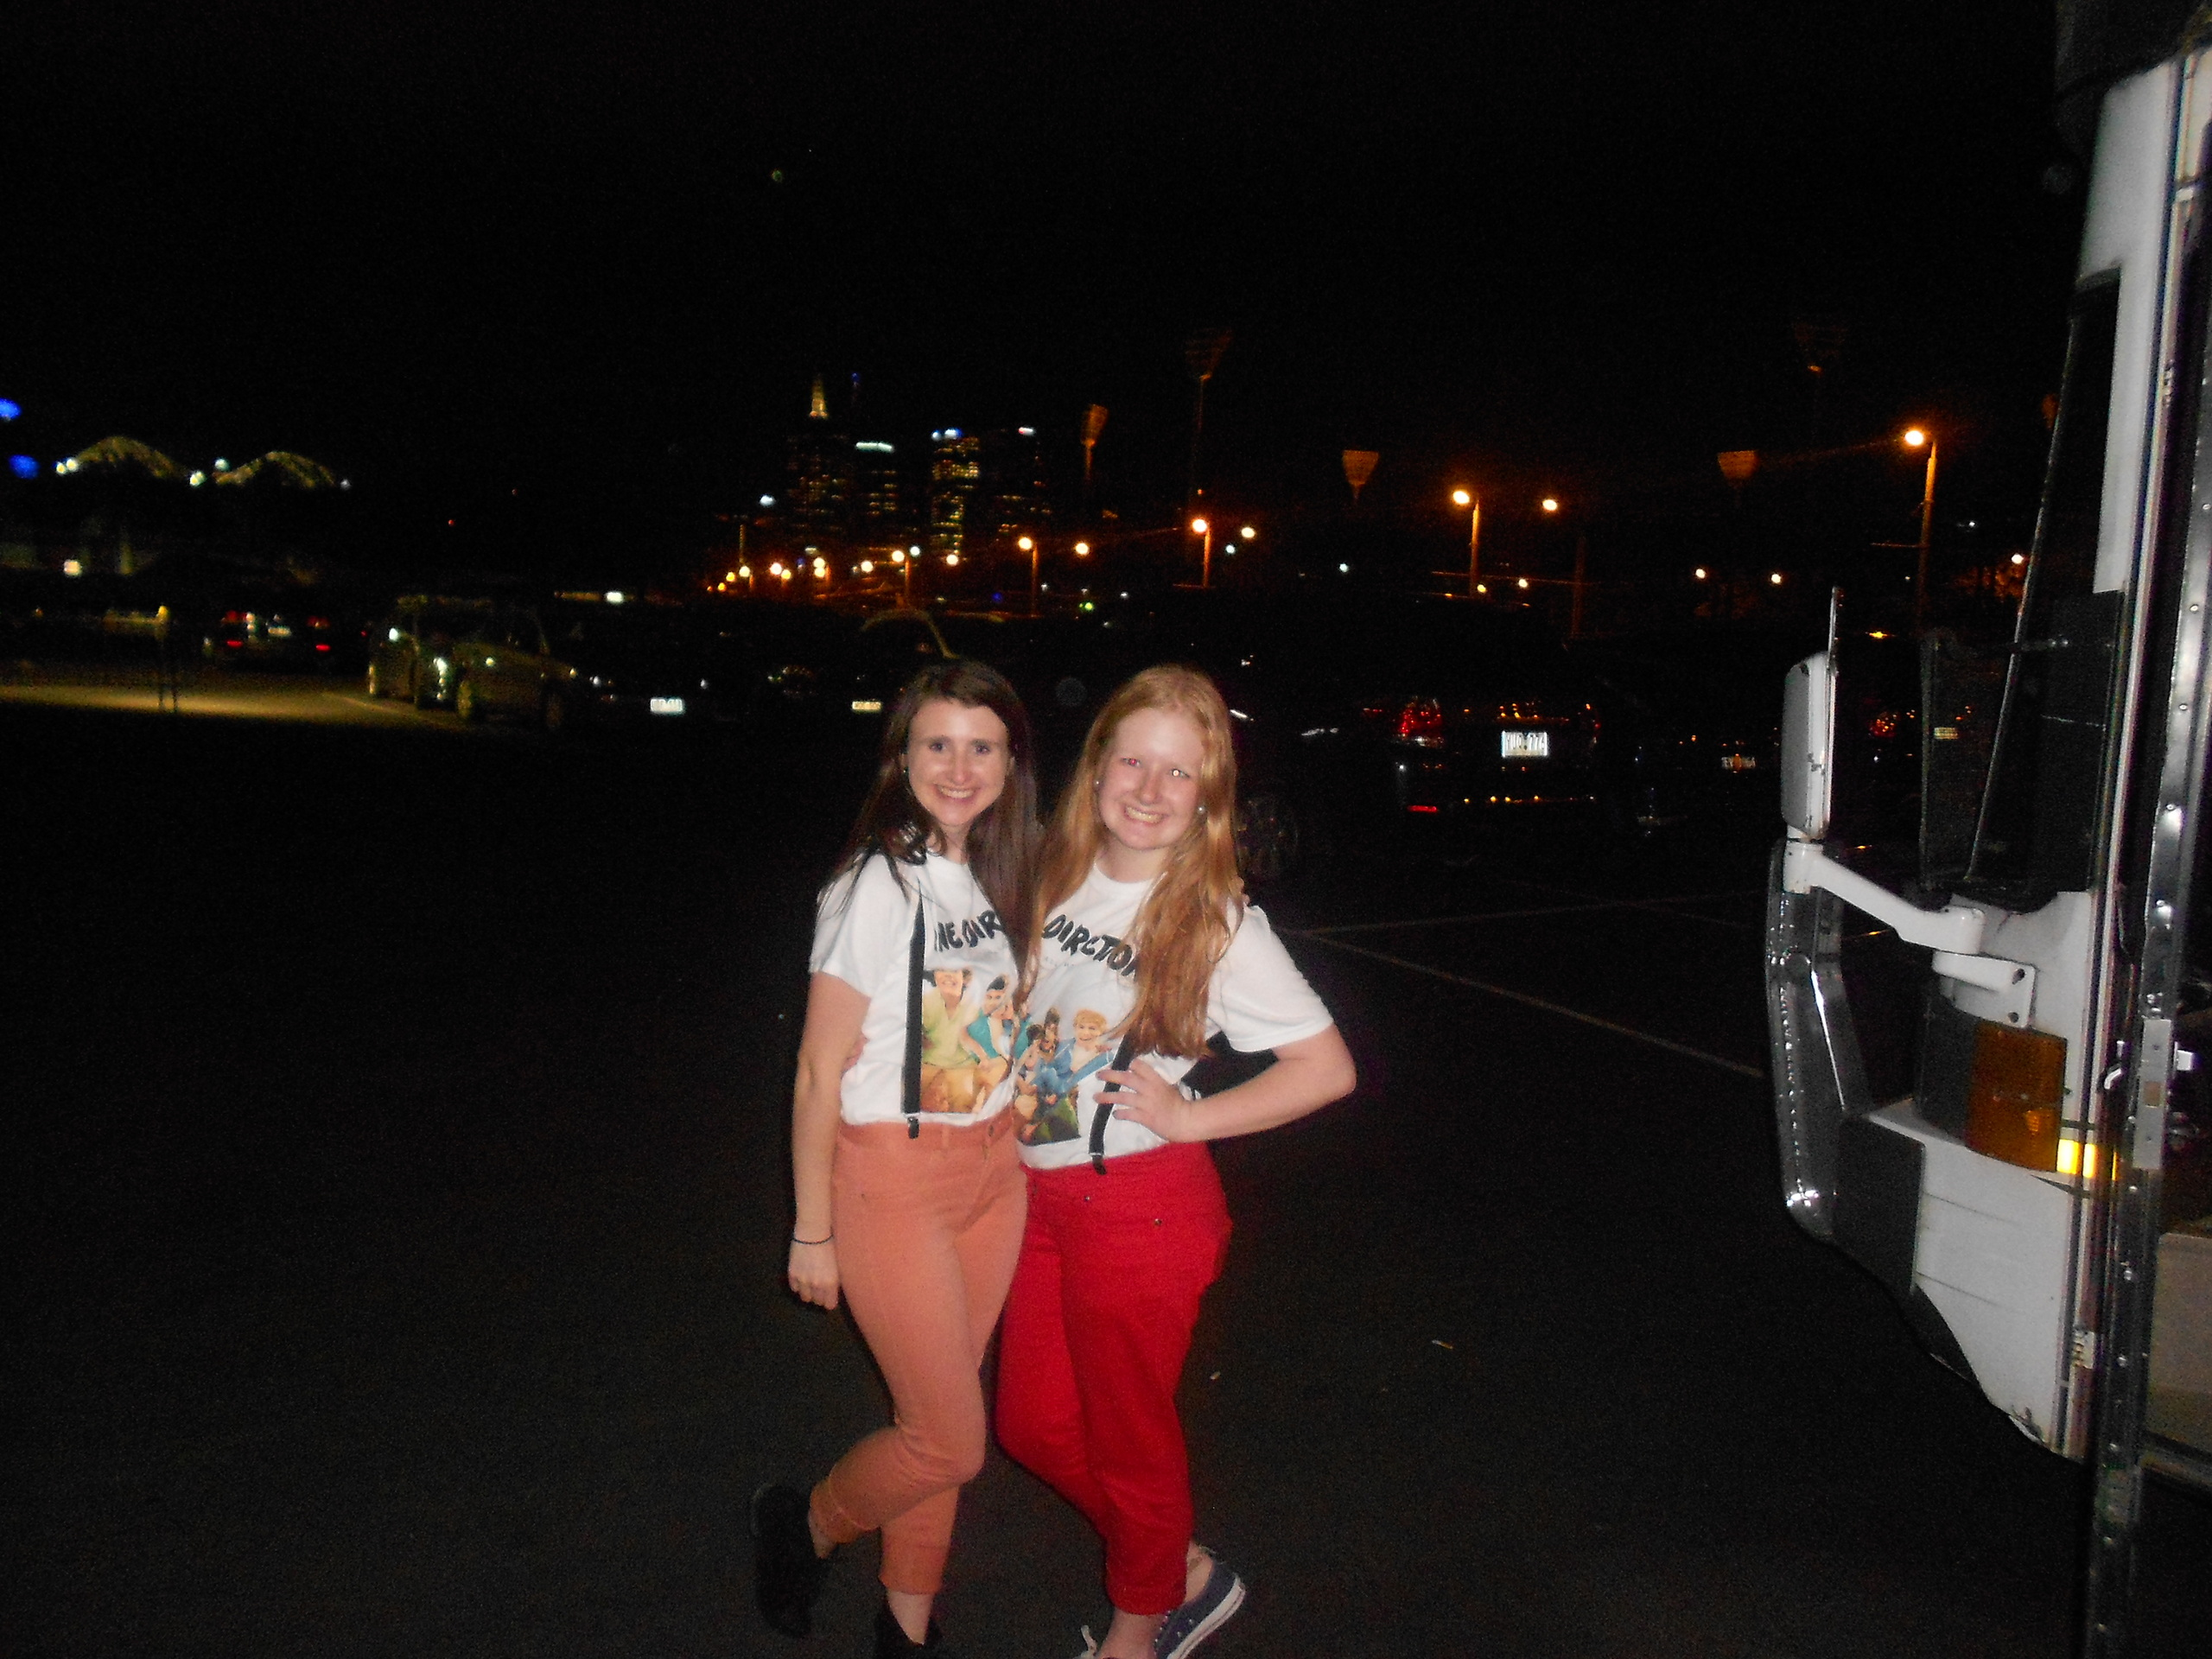 Me and my bestfriend at the ONE DIRECTION CONCERT!!!!